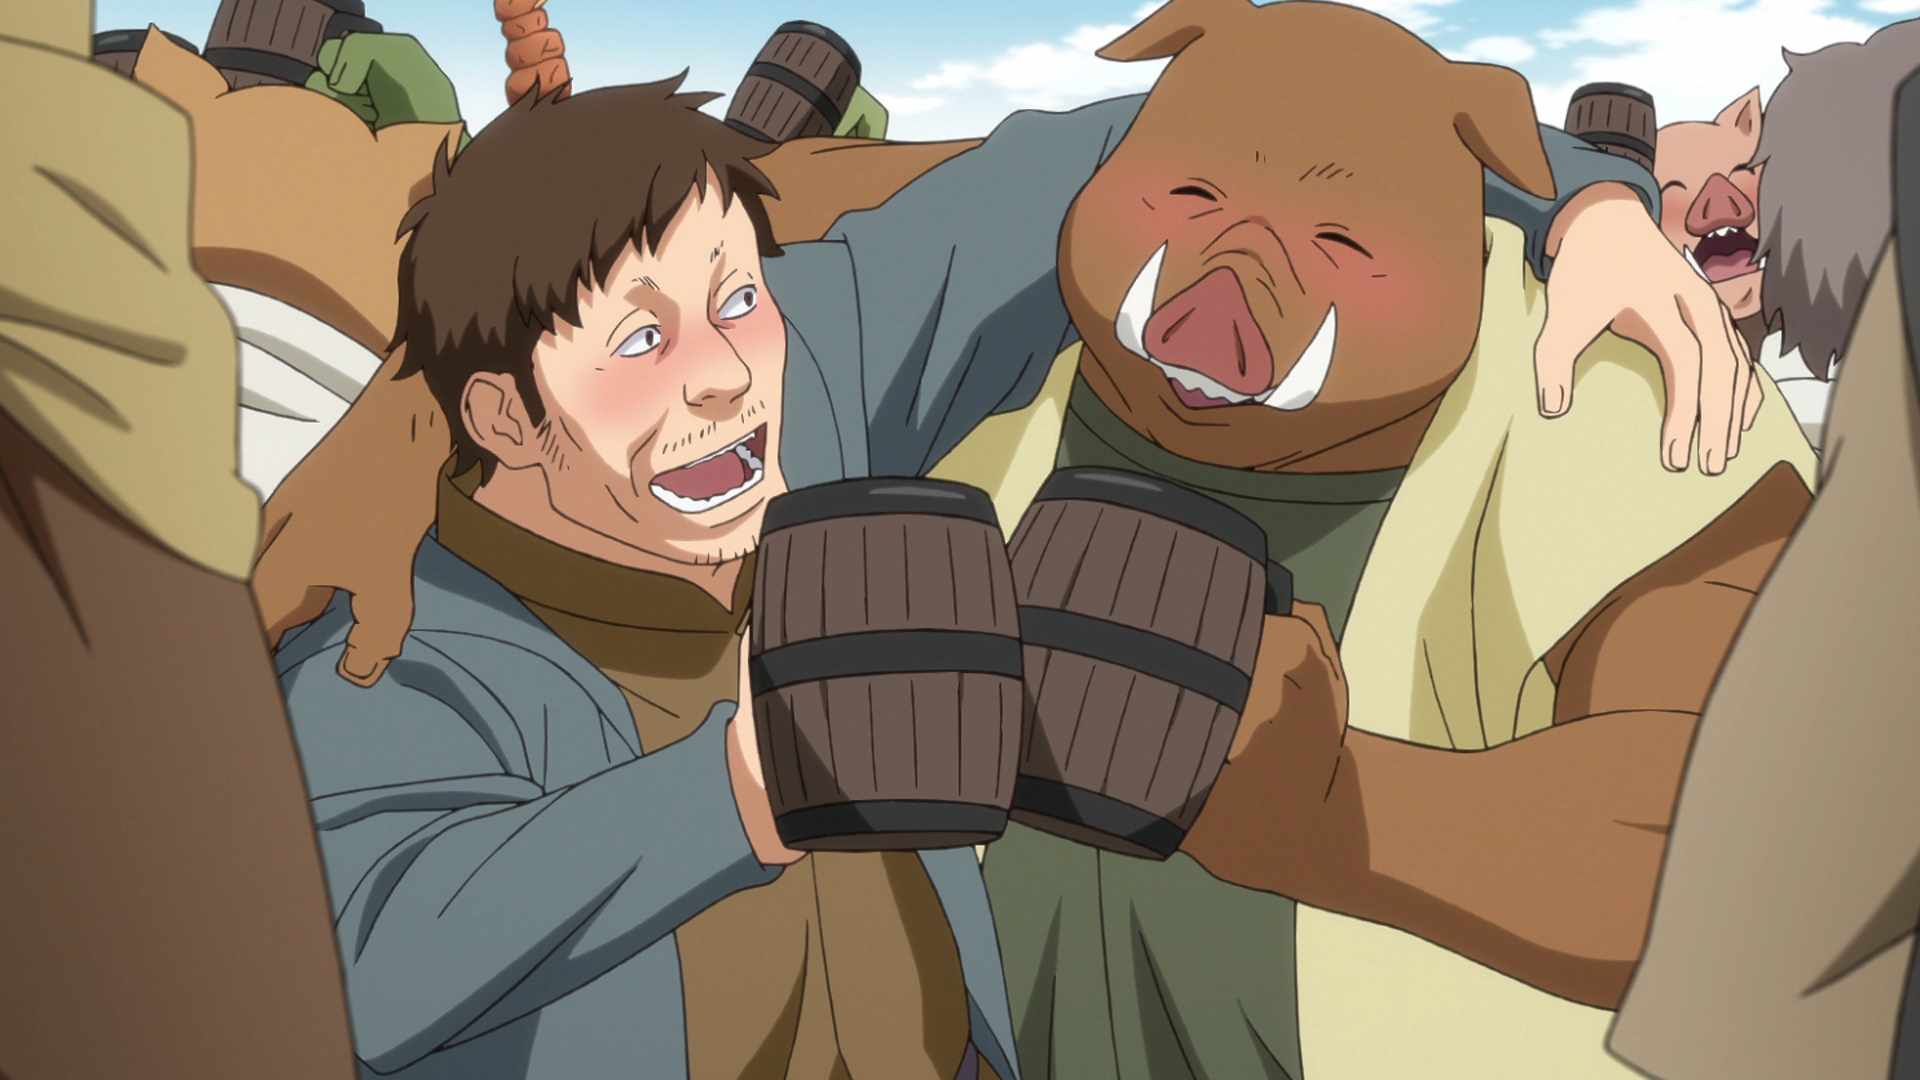 A human and an orc enjoy a toast and some friendly companionship during a feast in the capital city of the Jura Tempest Federation in a scene from the That Time I Got Reincarnated as a Slime TV anime.